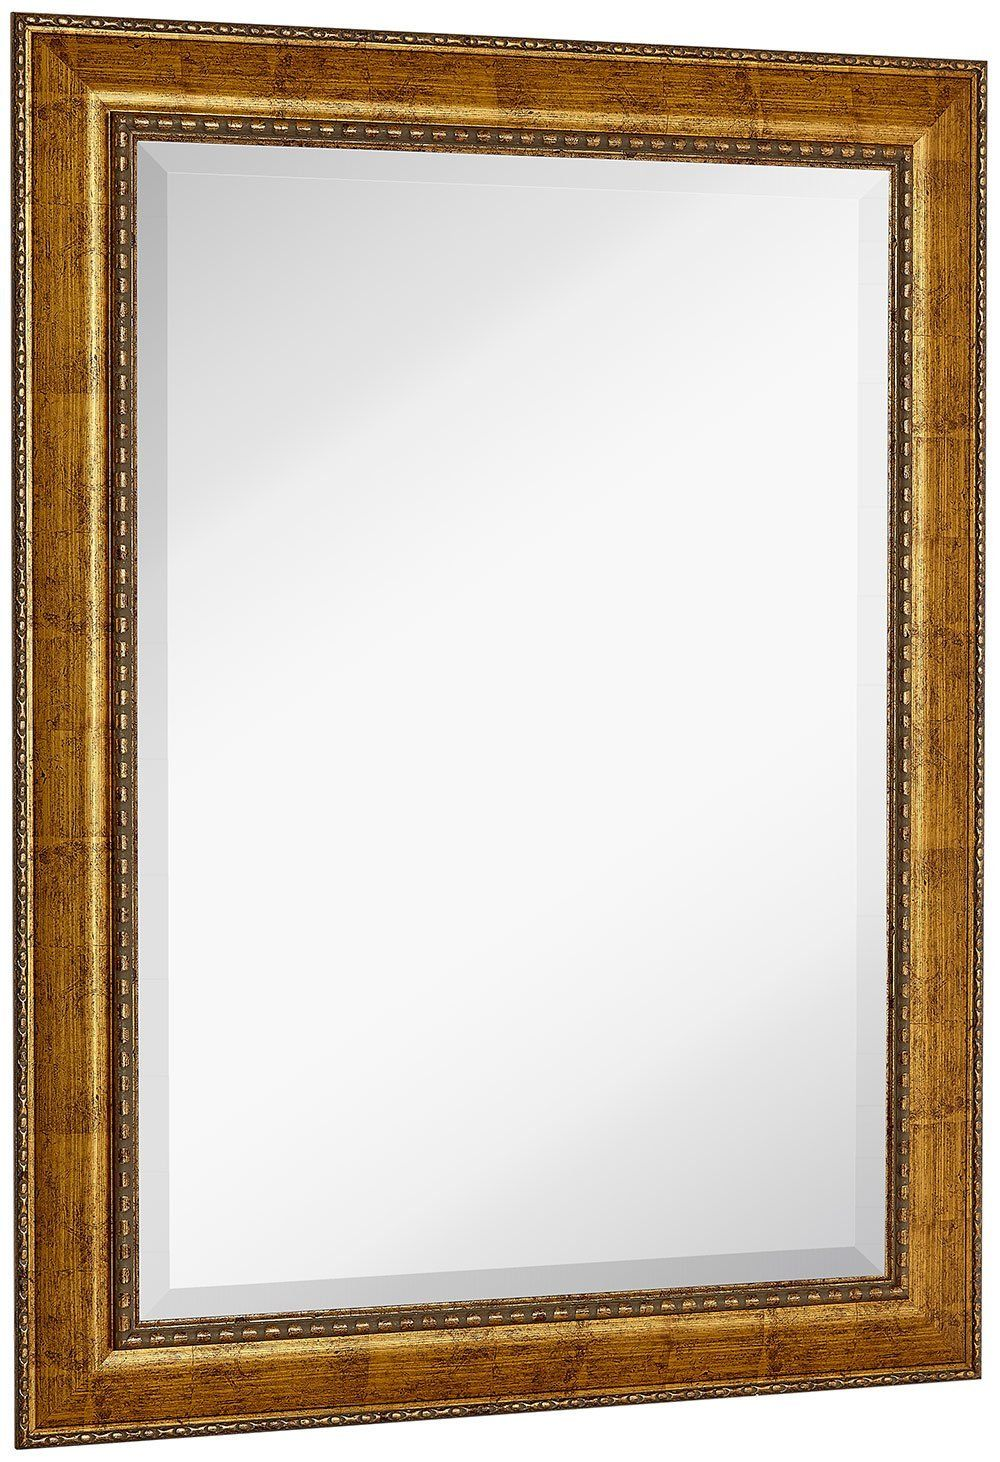 "Amazon.com: NEW Large Embellished Transitional Rectangle Wall Mirror | Luxury Designer Accented Frame | Solid Beveled Glass| Made In USA | Vanity, Bedroom, or Bathroom | Hangs Horizontal or Vertical 30"" x 40"": Home & Kitchen"